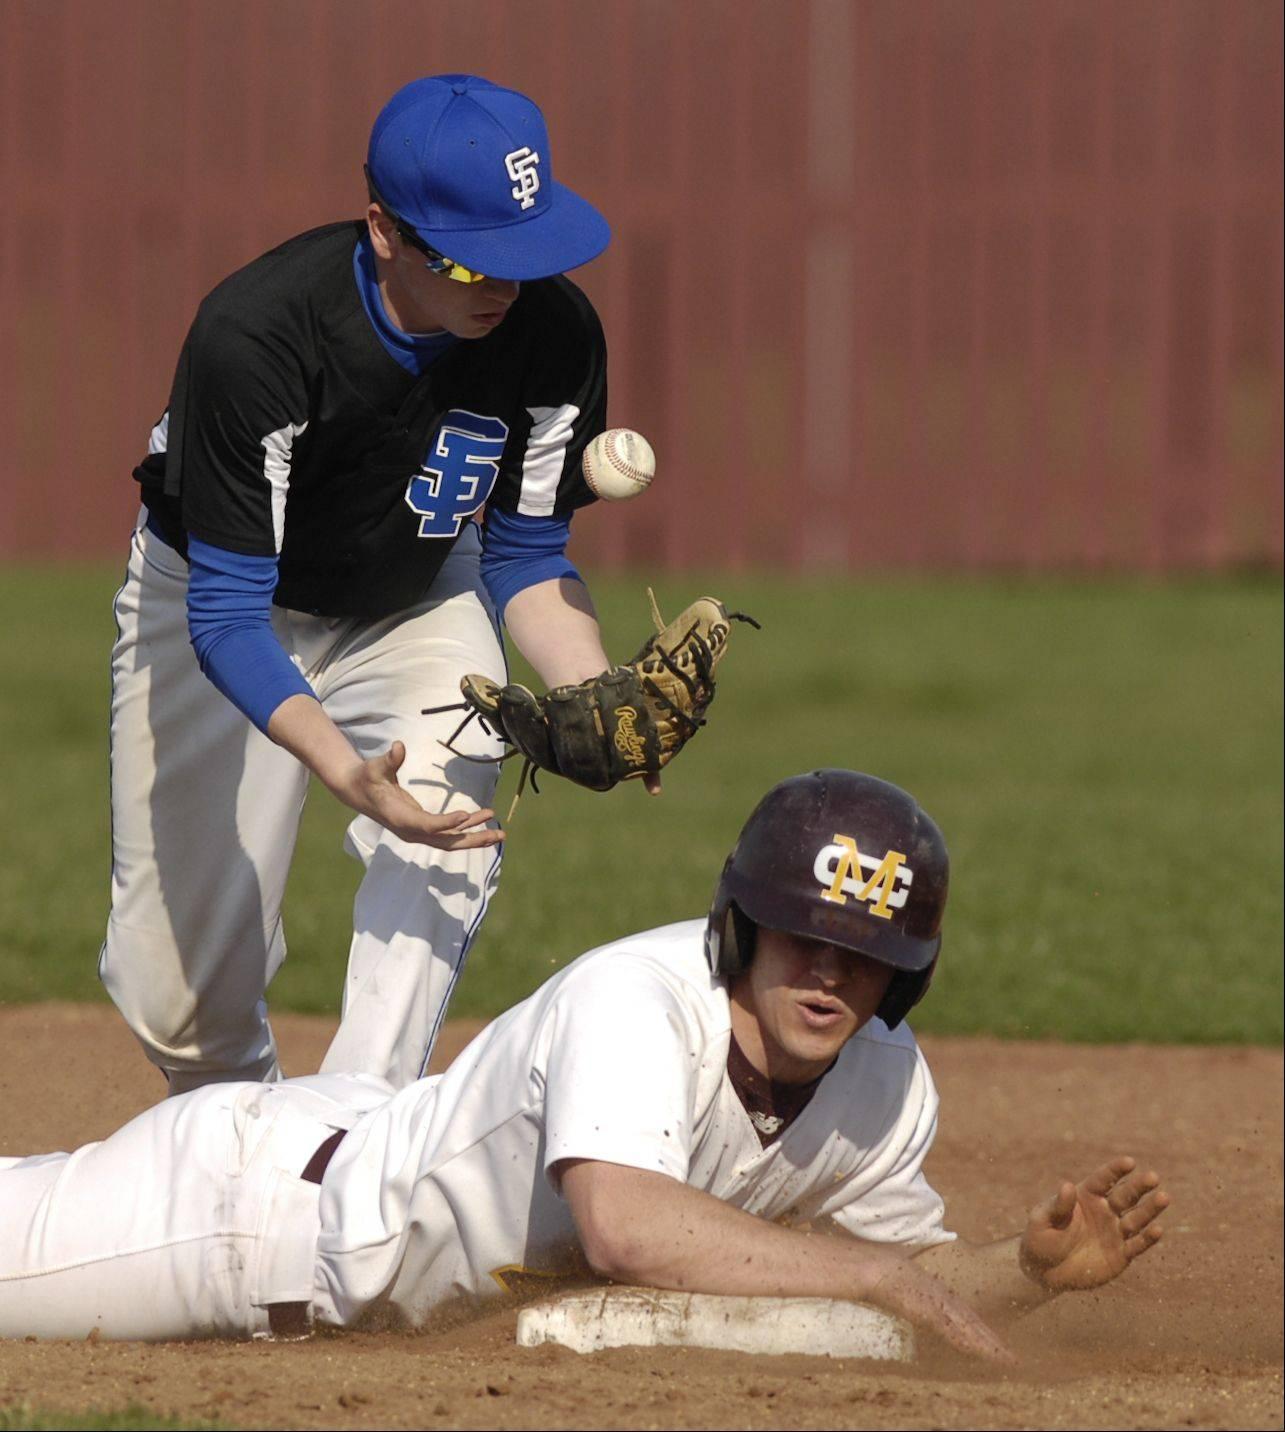 Alex Alcantara of Montini makes it back safely to 2nd as Jake Pestel of St. Francis bobbles the ball during boys varsity baseball in Lombard, Monday.